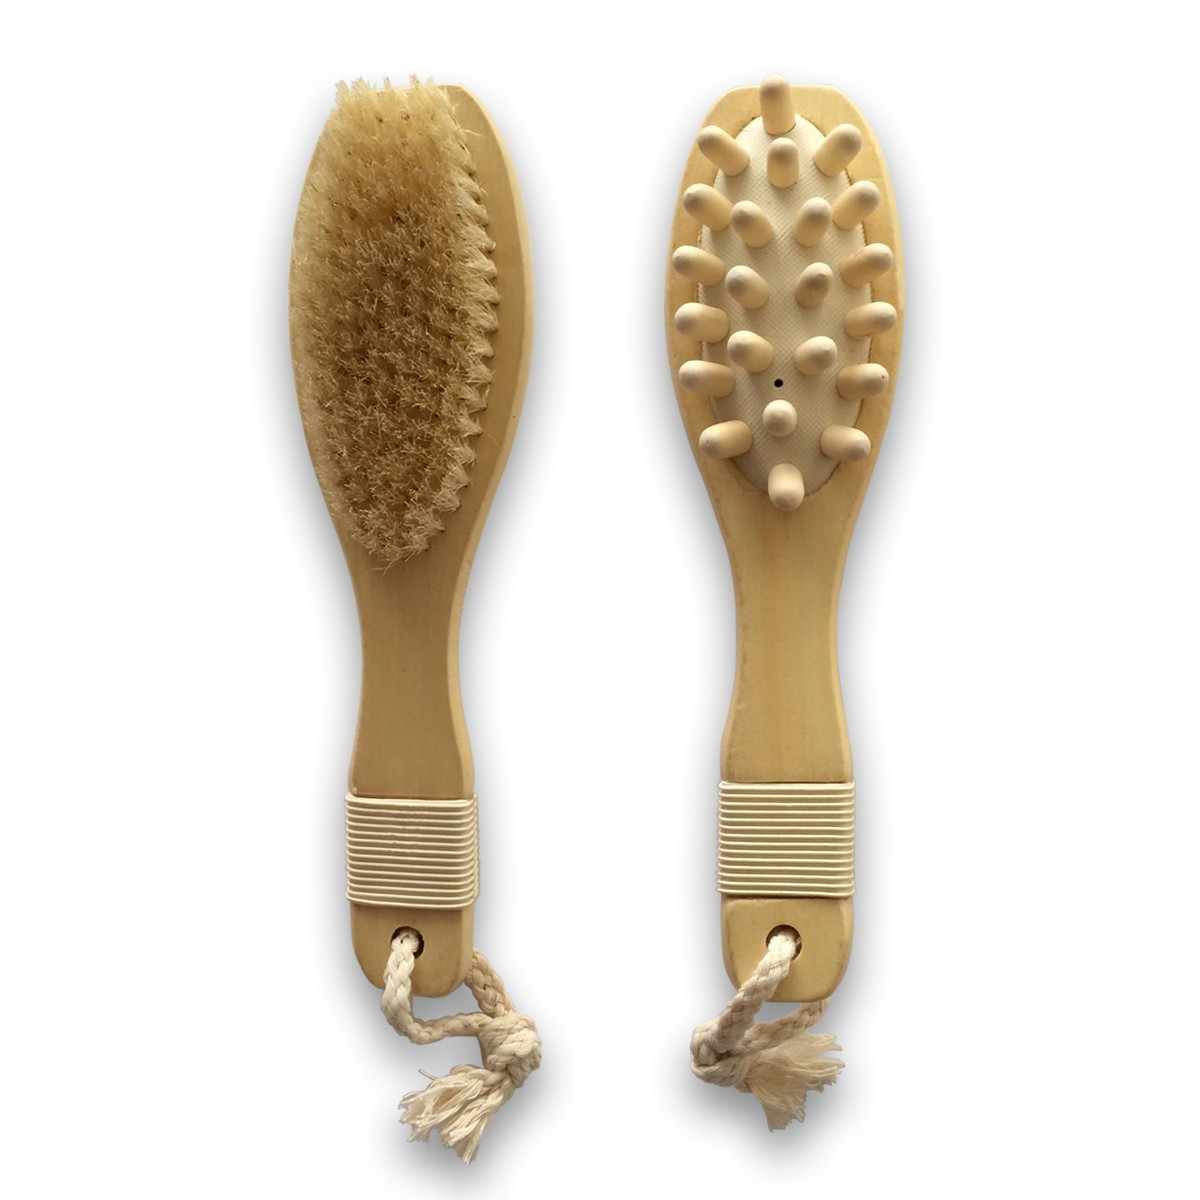 Body Brush Dry Skin Brushing Toiletries Amp Household